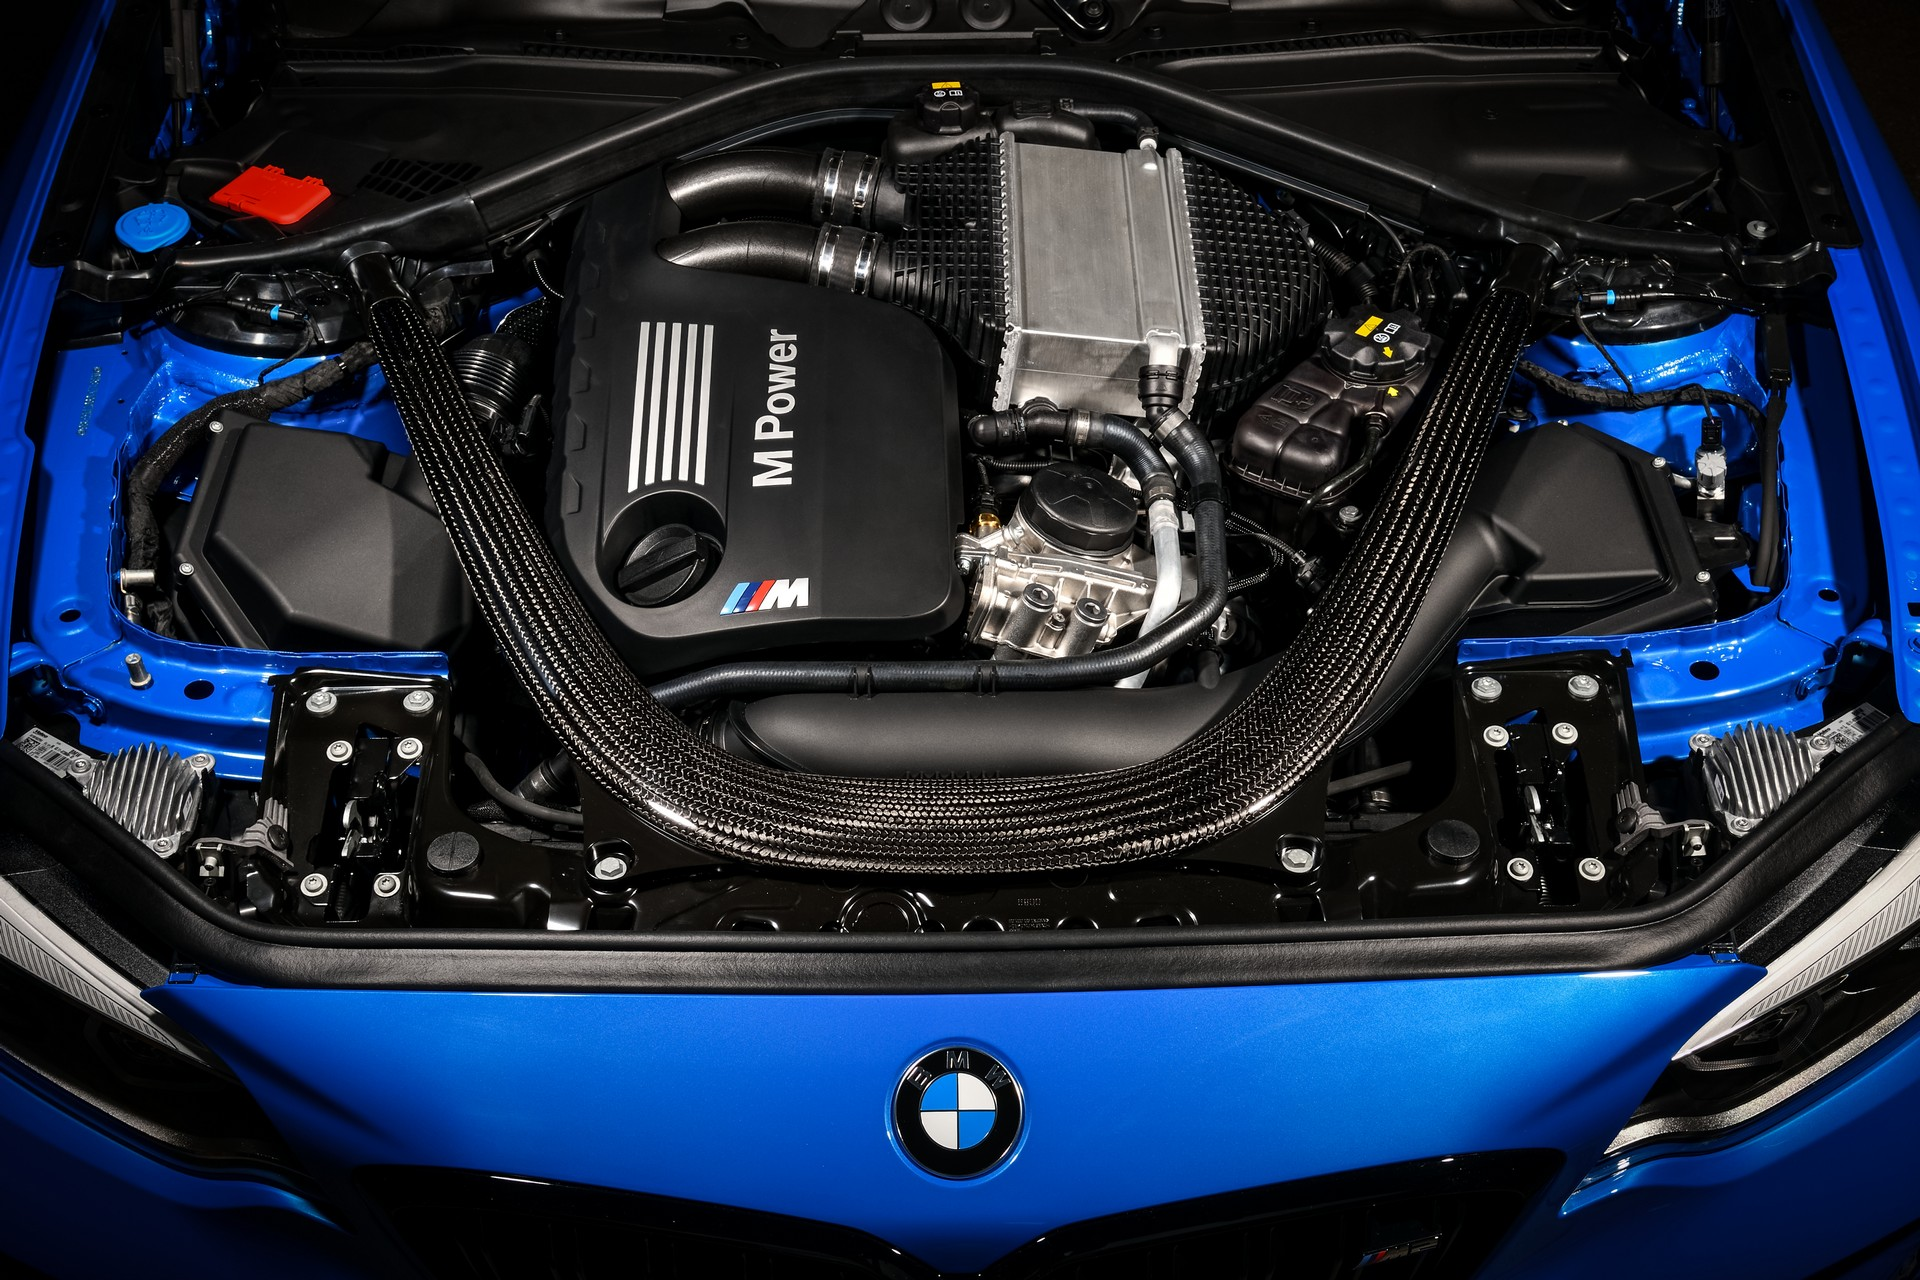 fb368ccd-2​020-bmw-m2​-cs-17